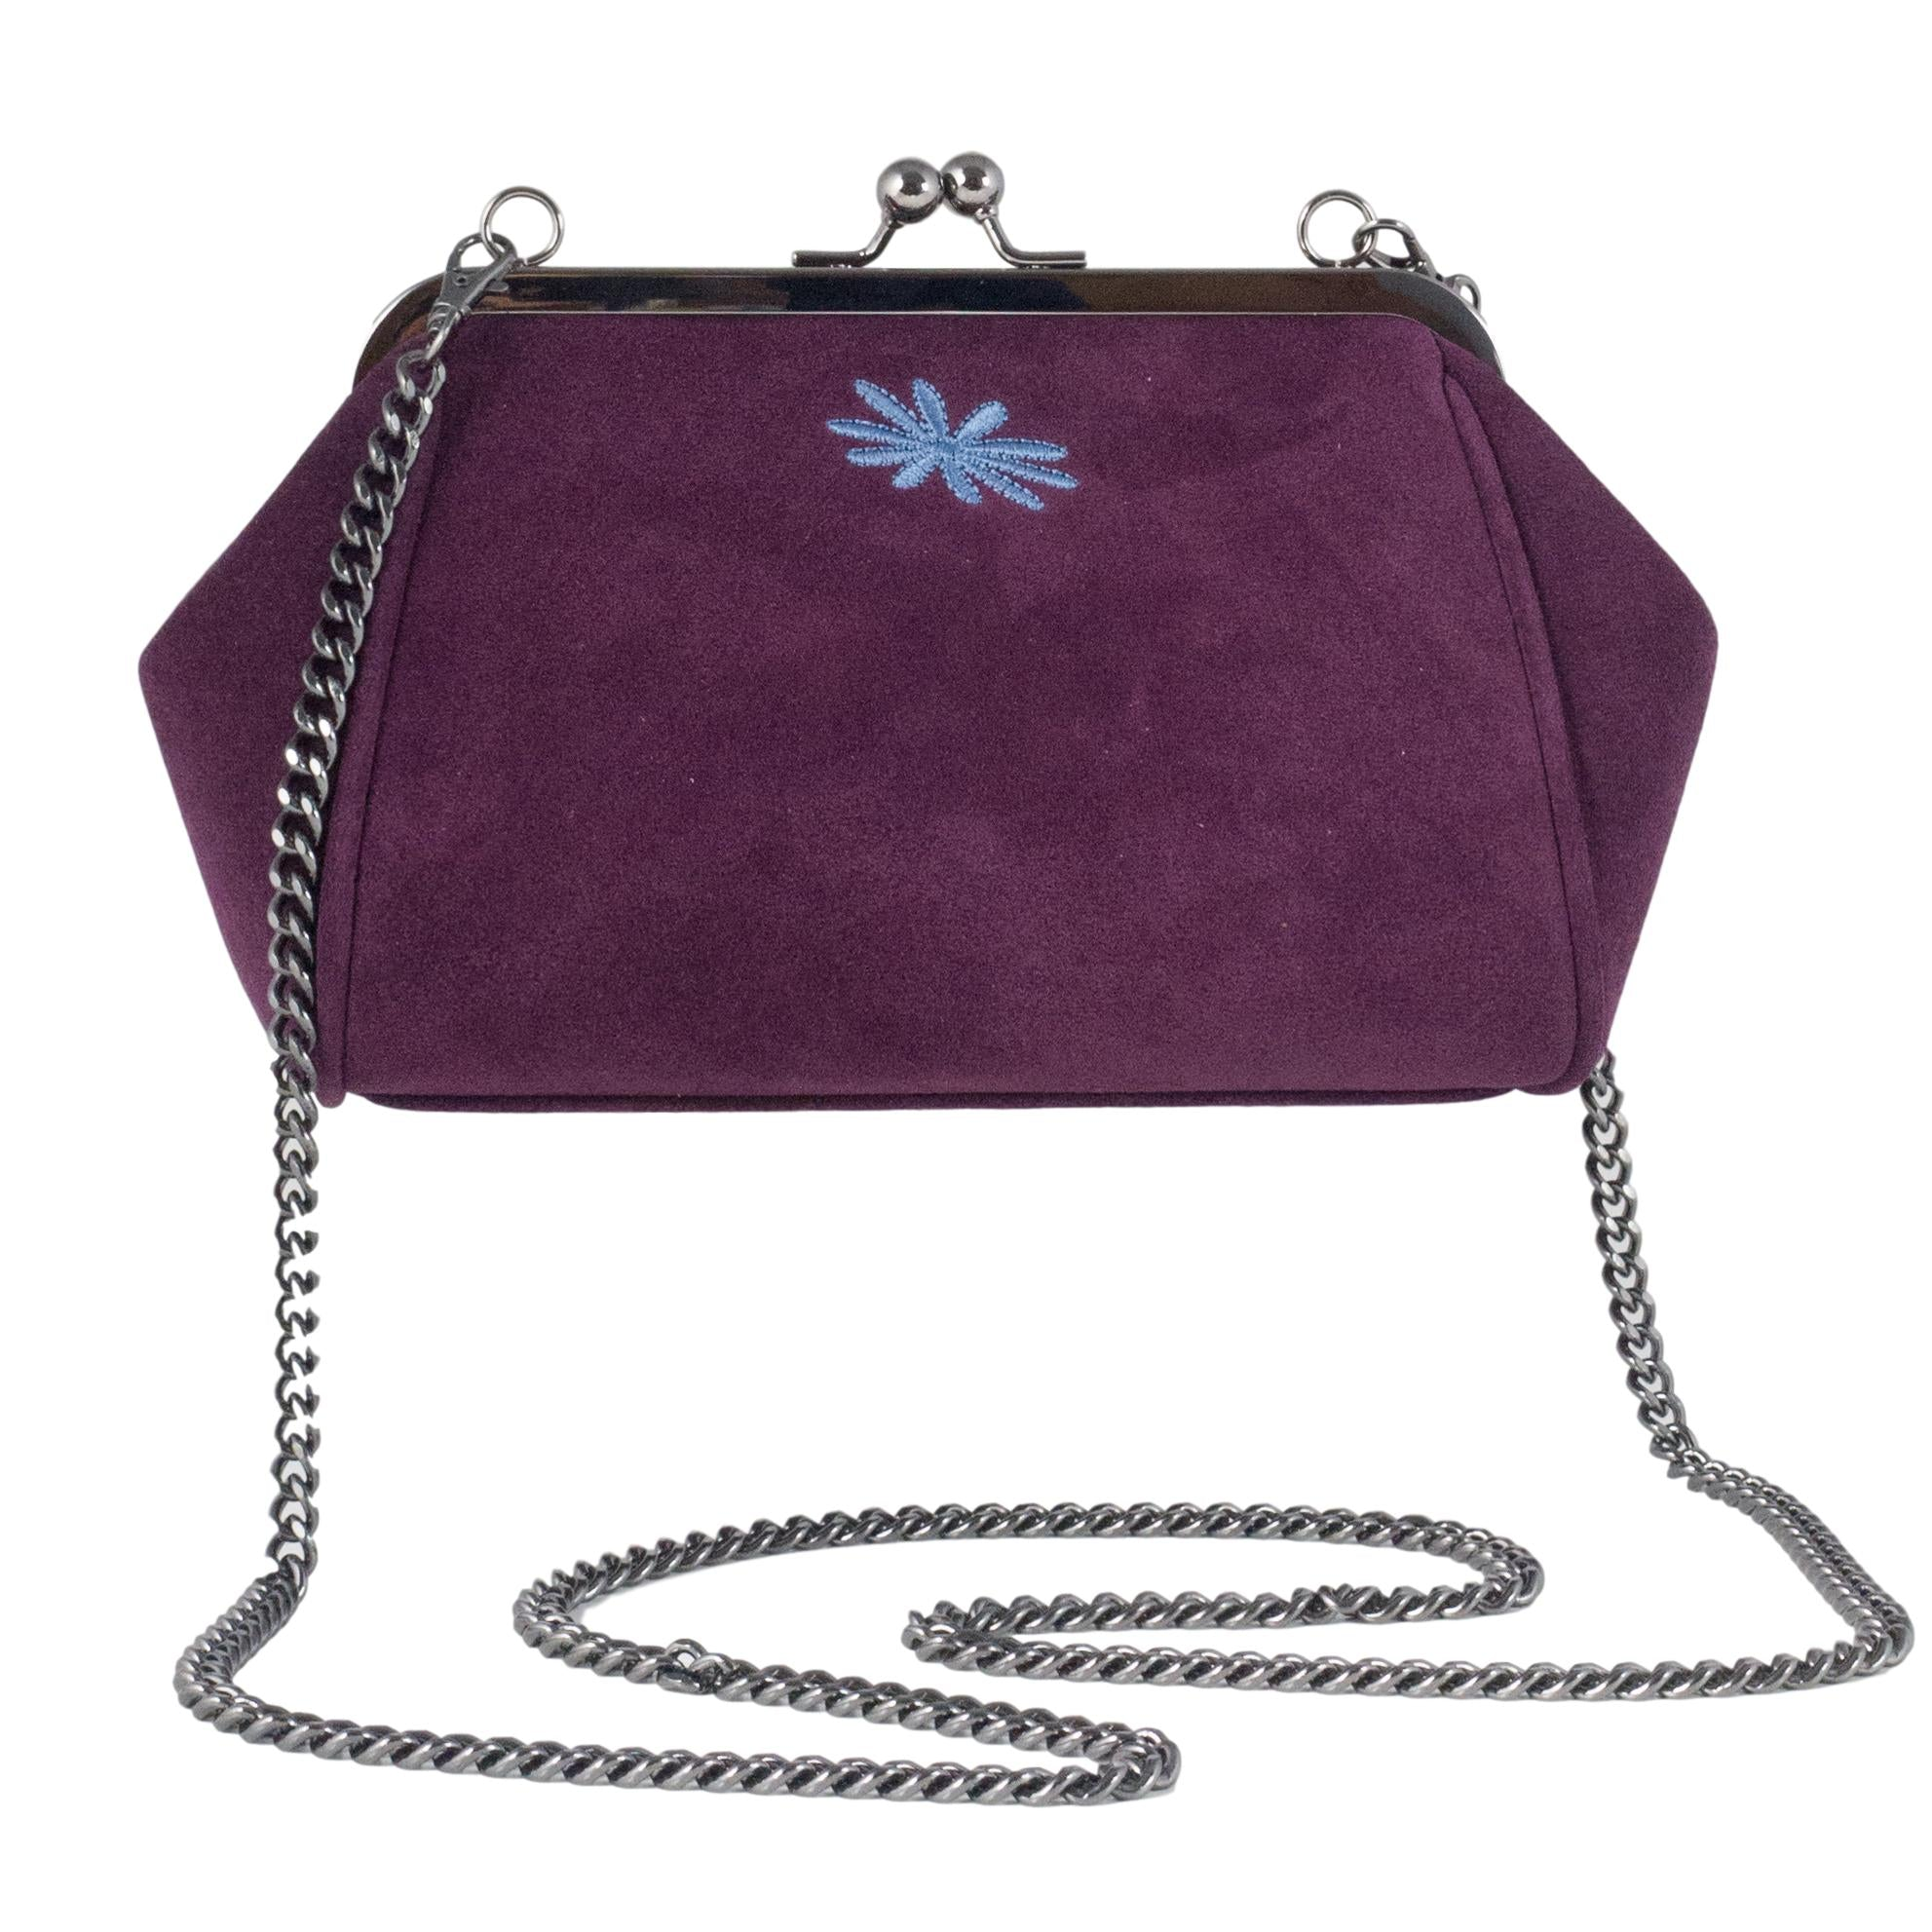 berry bordeaux suede leather clutch purse style bag